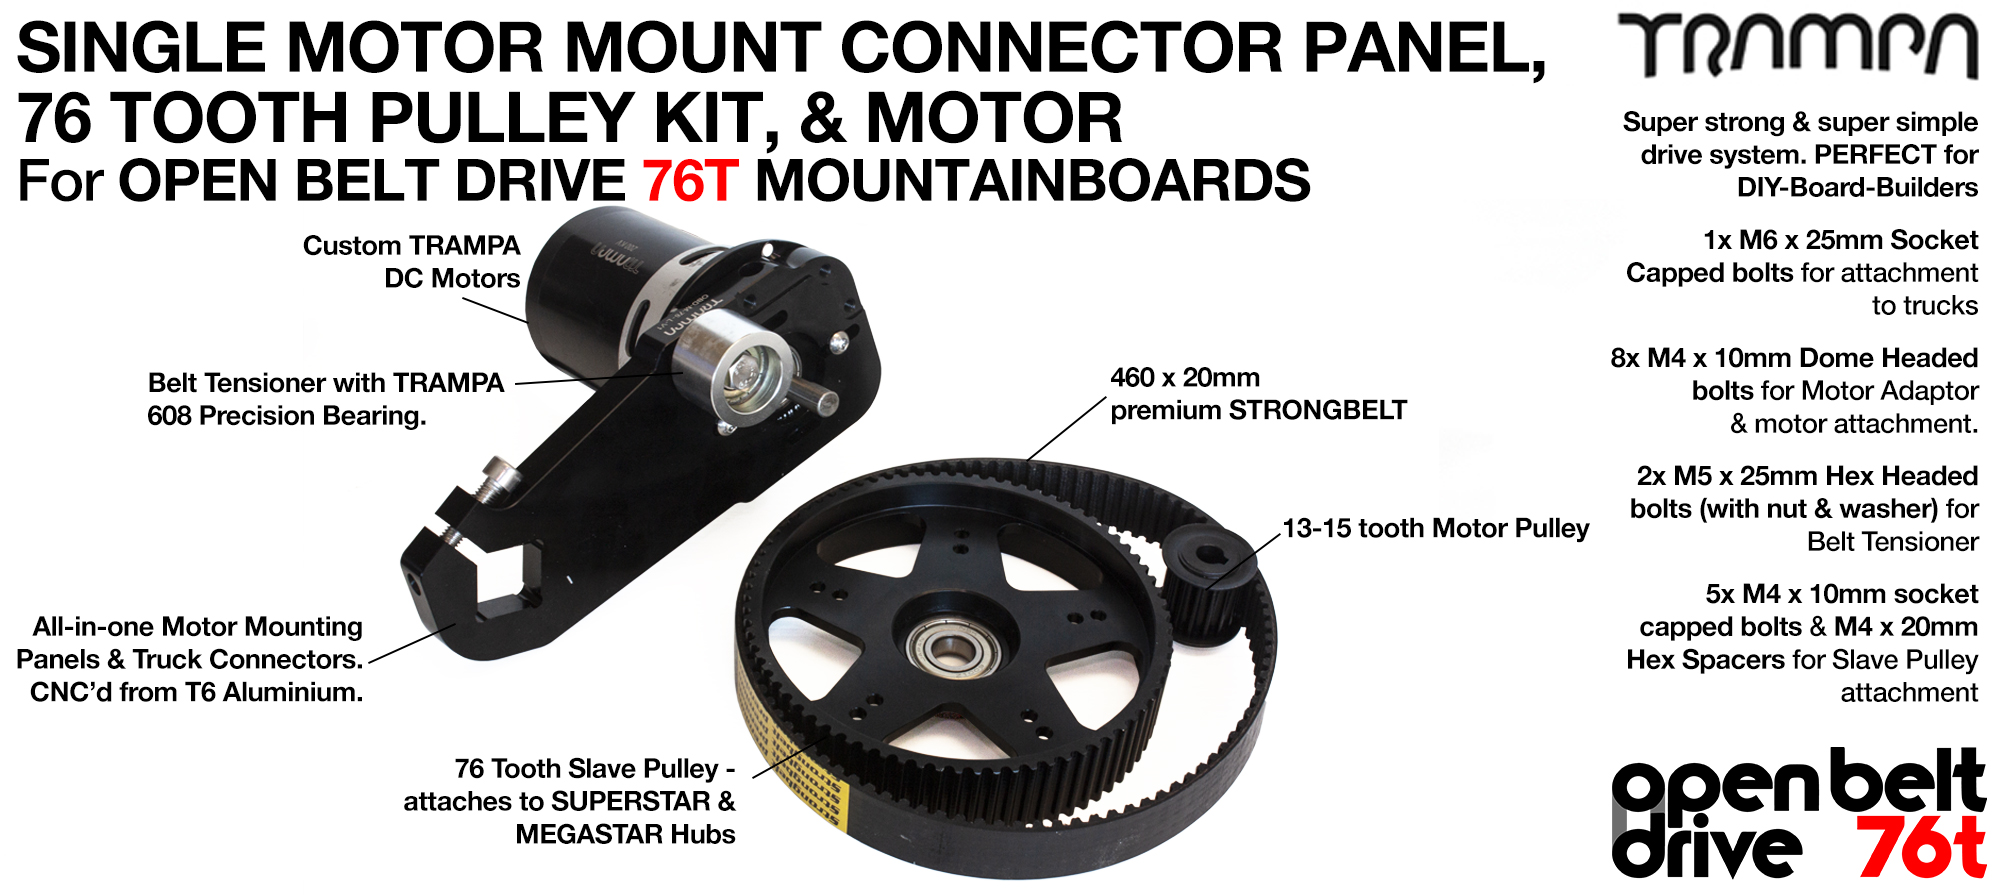 76T OBD Motor Mount & 76 tooth Pulley with MOTOR - SINGLE